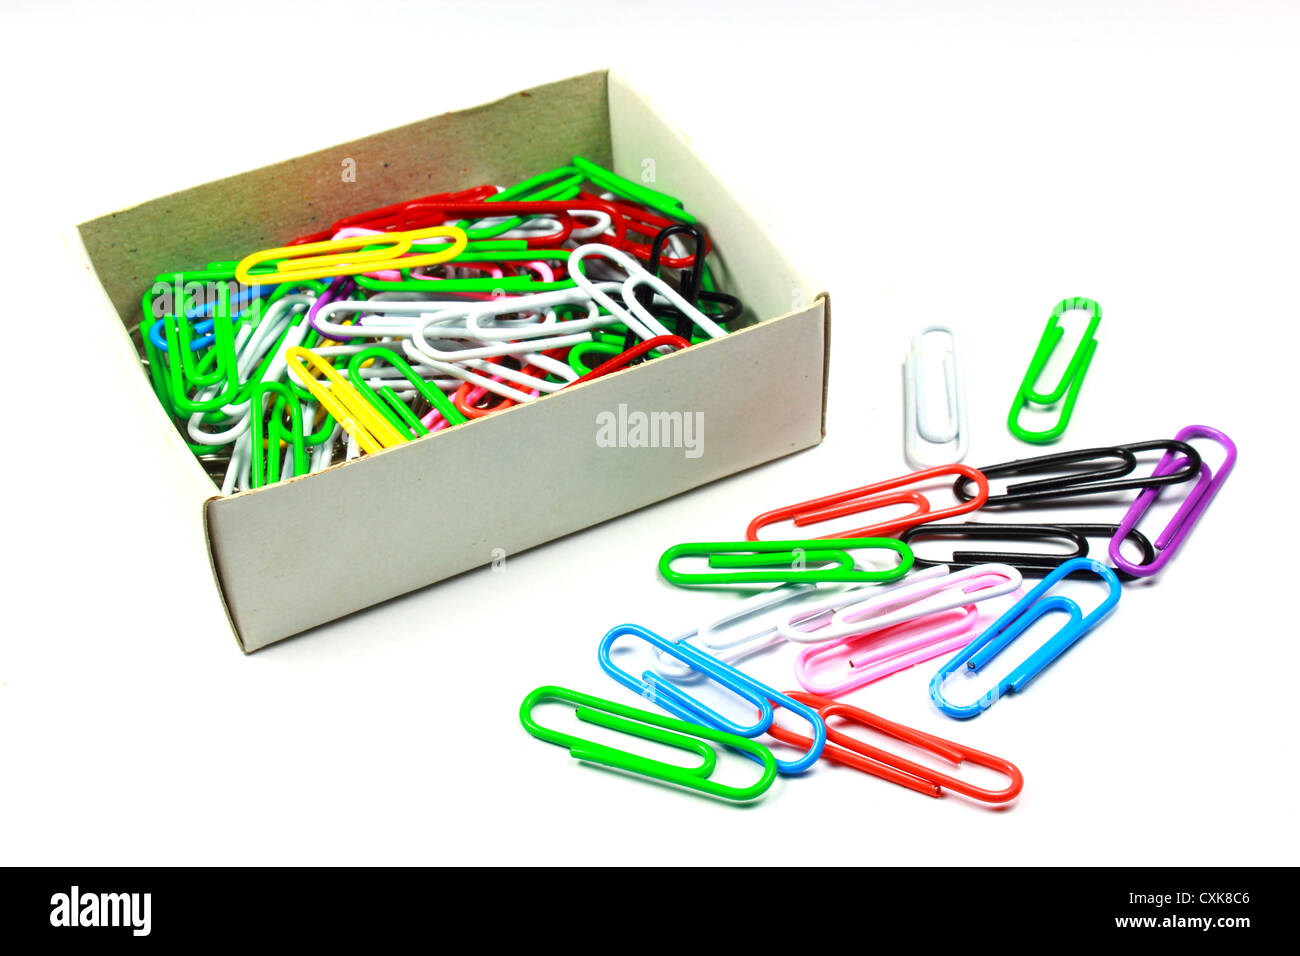 paper clip in a box stock photo: 50825494 - alamy